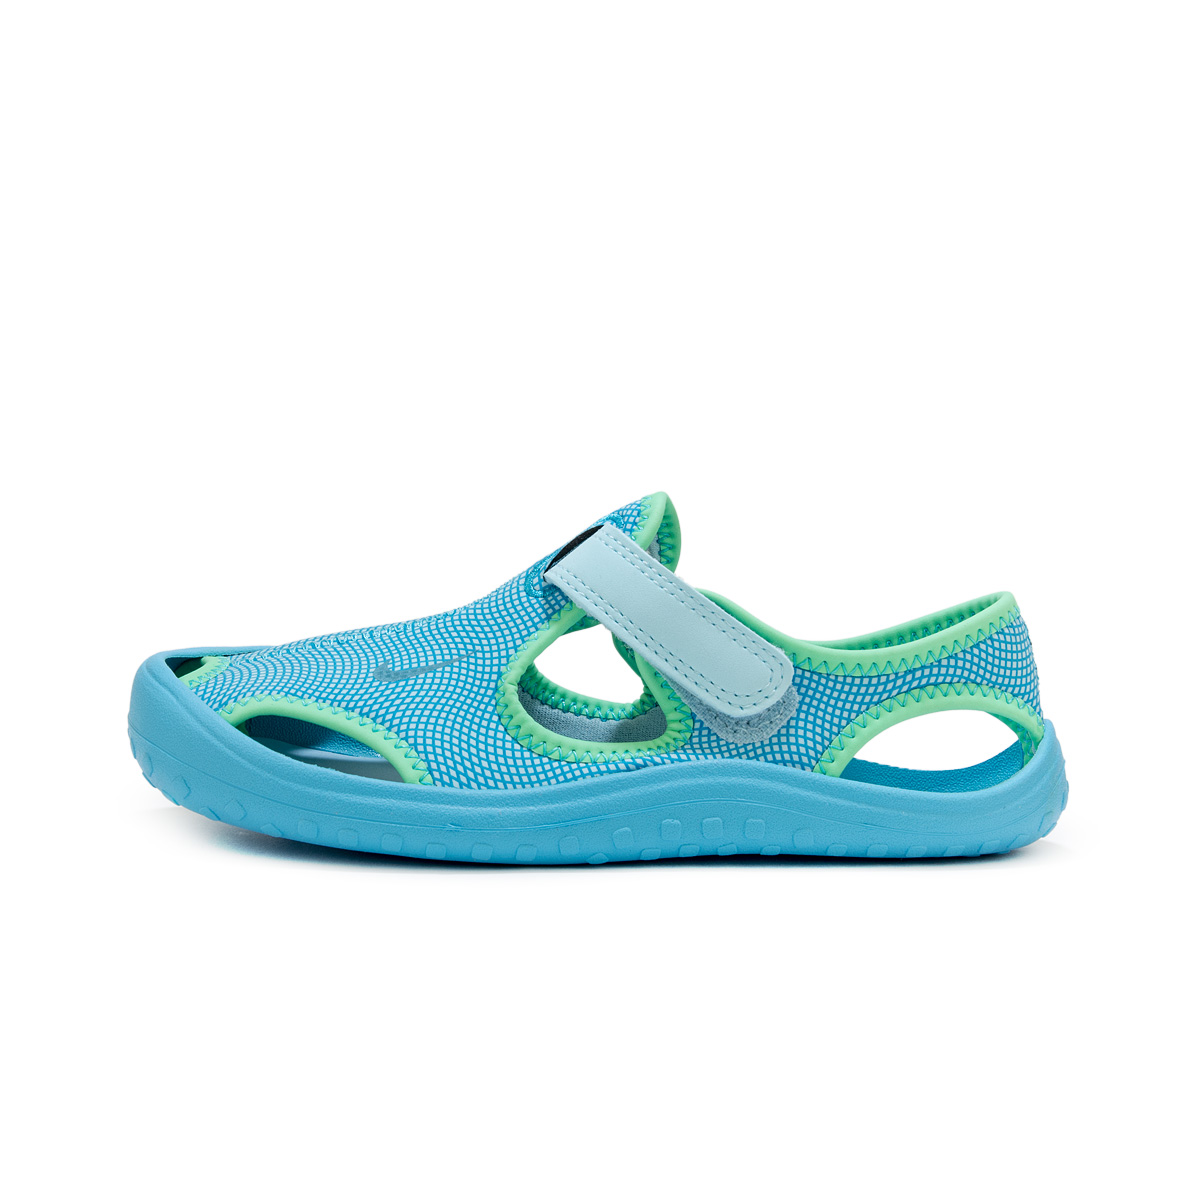 0b8d7ad47be1 Nike Sunray Protect PS 903631 400